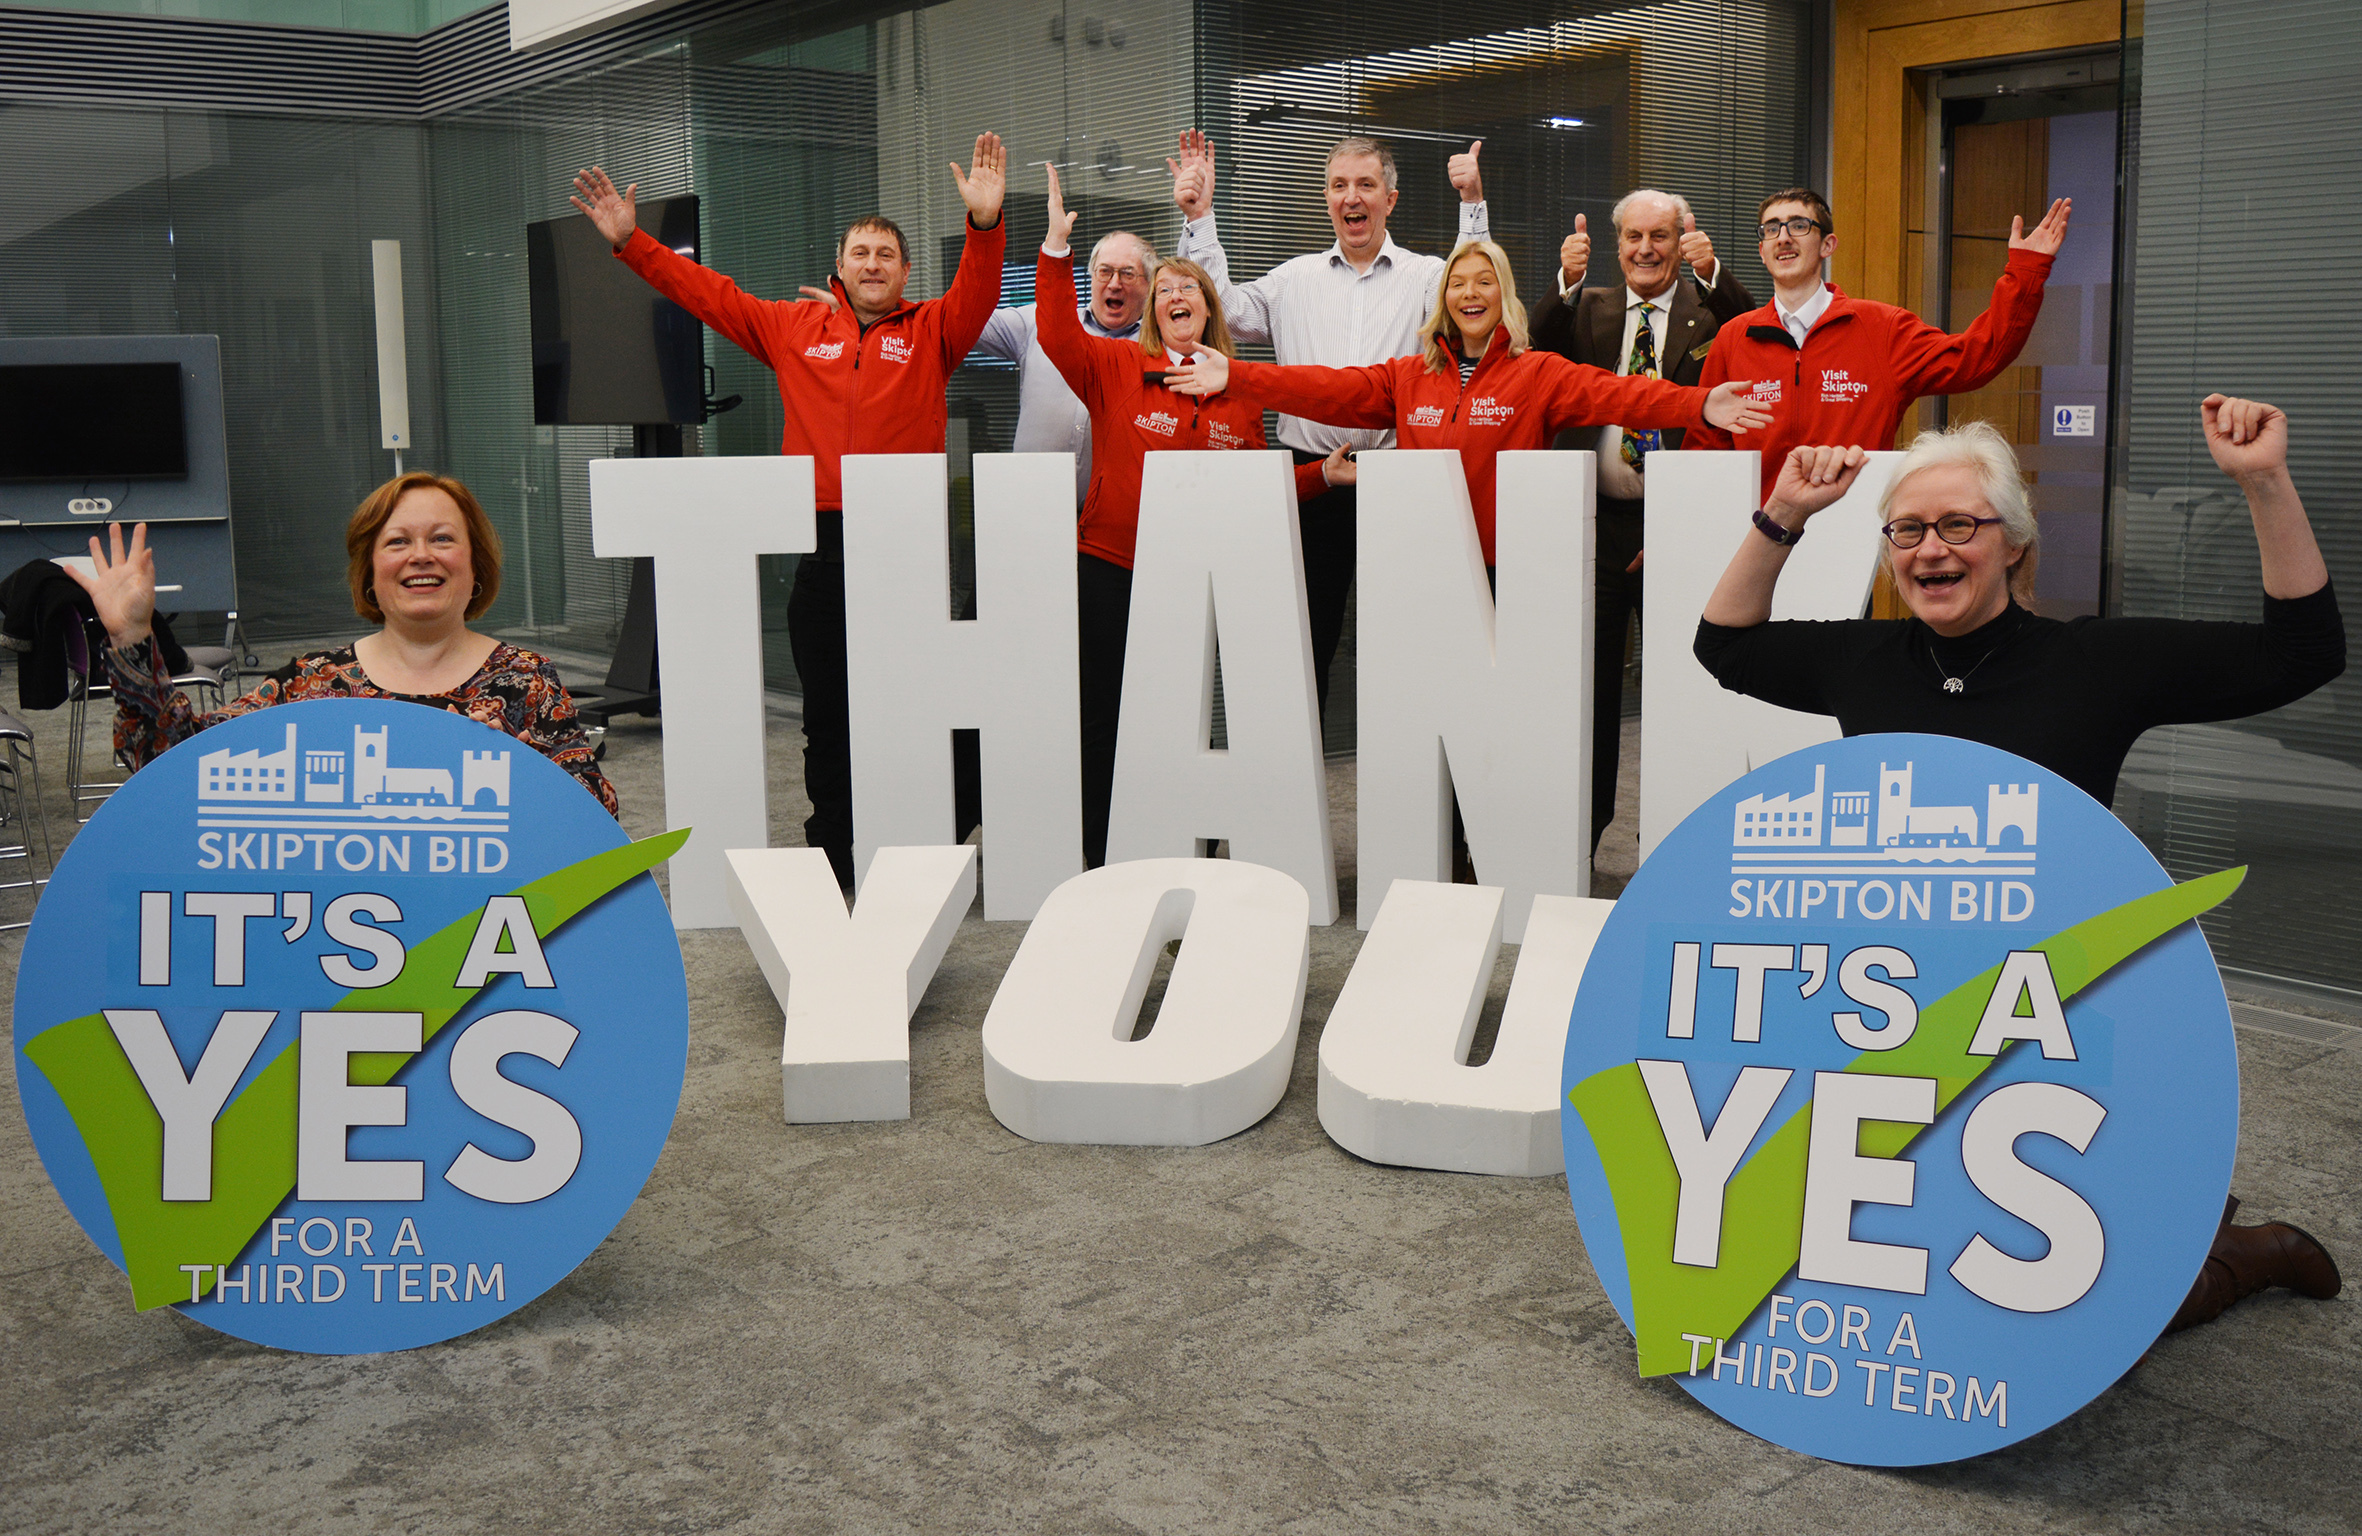 Officials celebrate the Yes vote